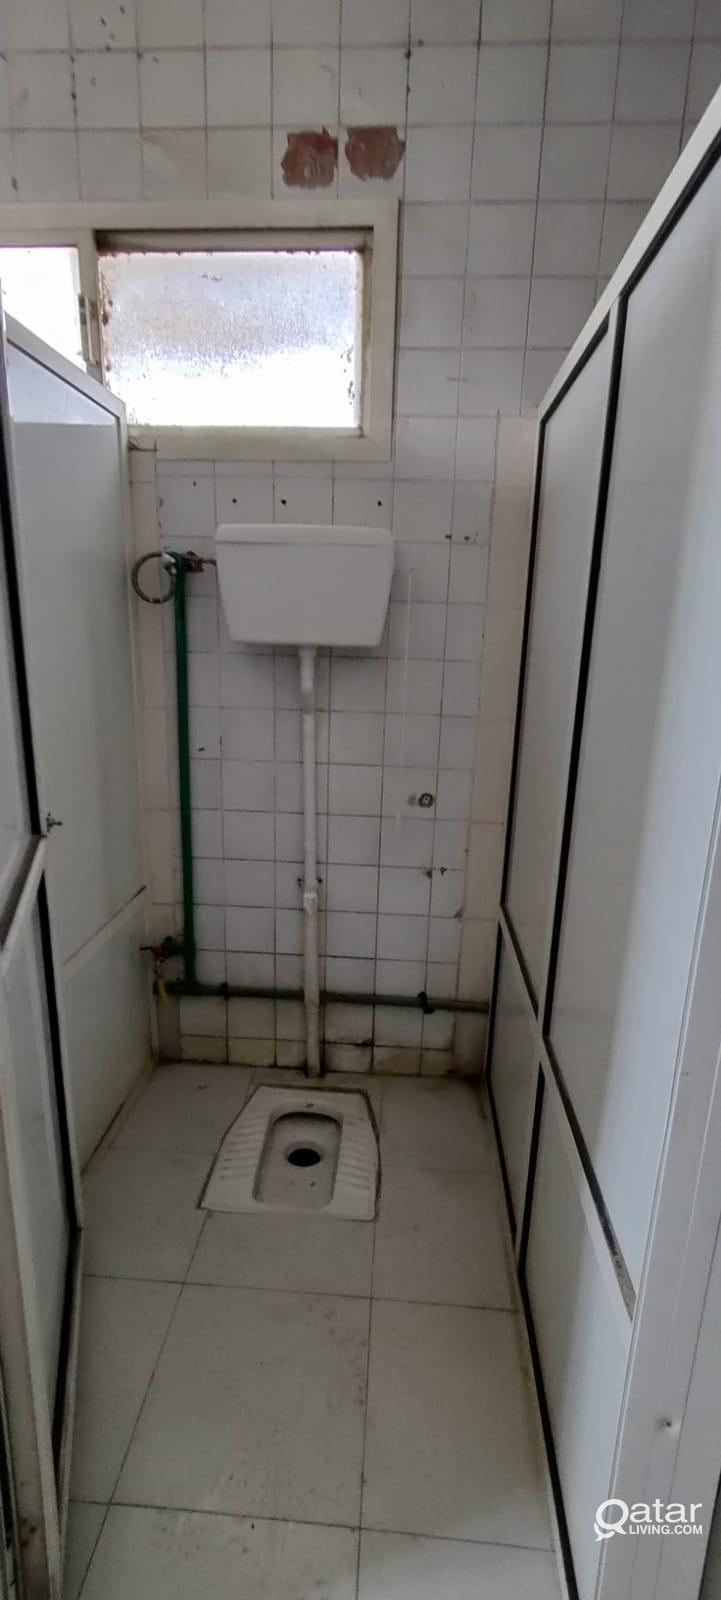 76 Room For Rent